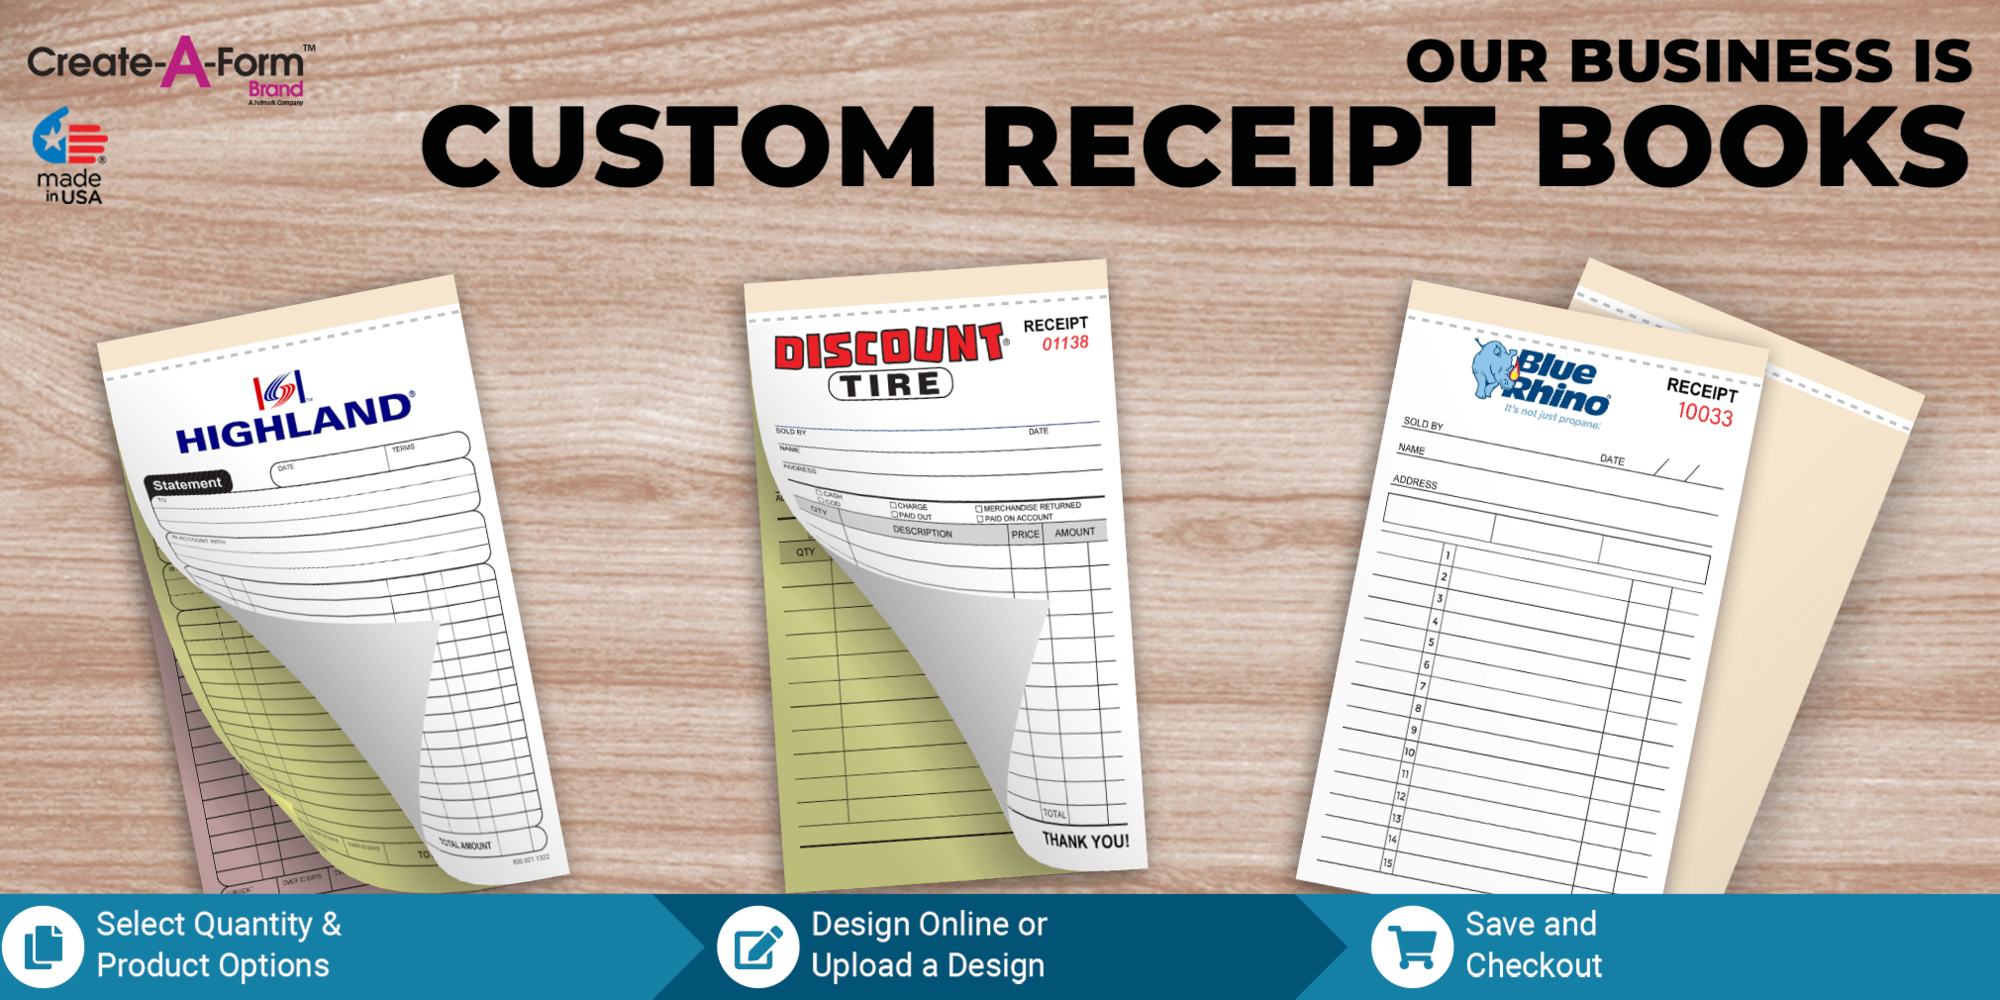 https://printpps.com/images/products_gallery_images/Banner_5_5x8_5NCR_Receipt_ProdFeat_Cover.png